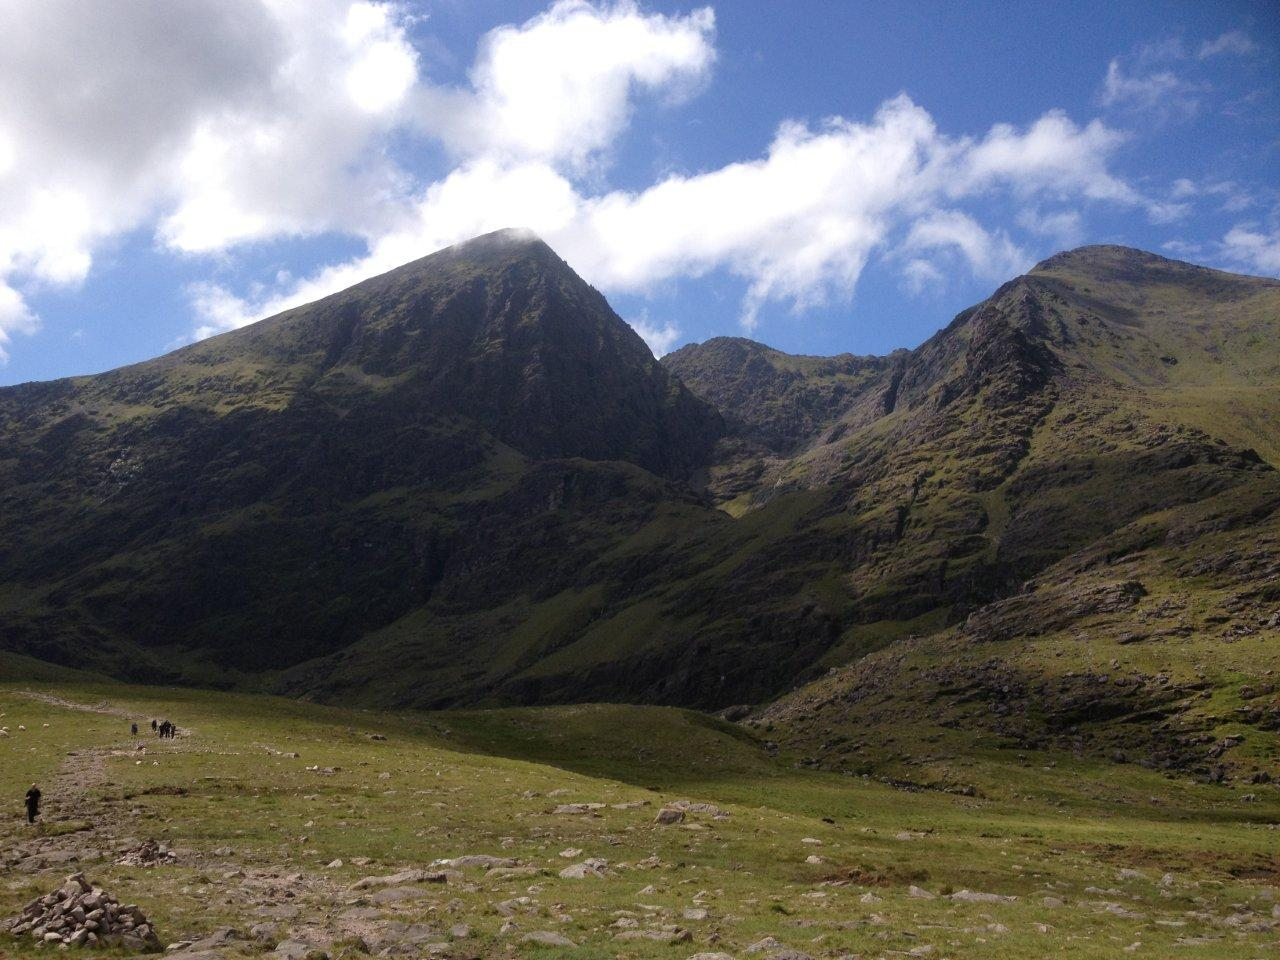 walking map app with Stumpa An Tsaimh Ridge To Beenkeragh on 5611266989 as well Carrauntoohil Mountain Via Devils Ladder Kerry further Cn as well 3383442112 moreover Montreal Highlights Walking Tour.